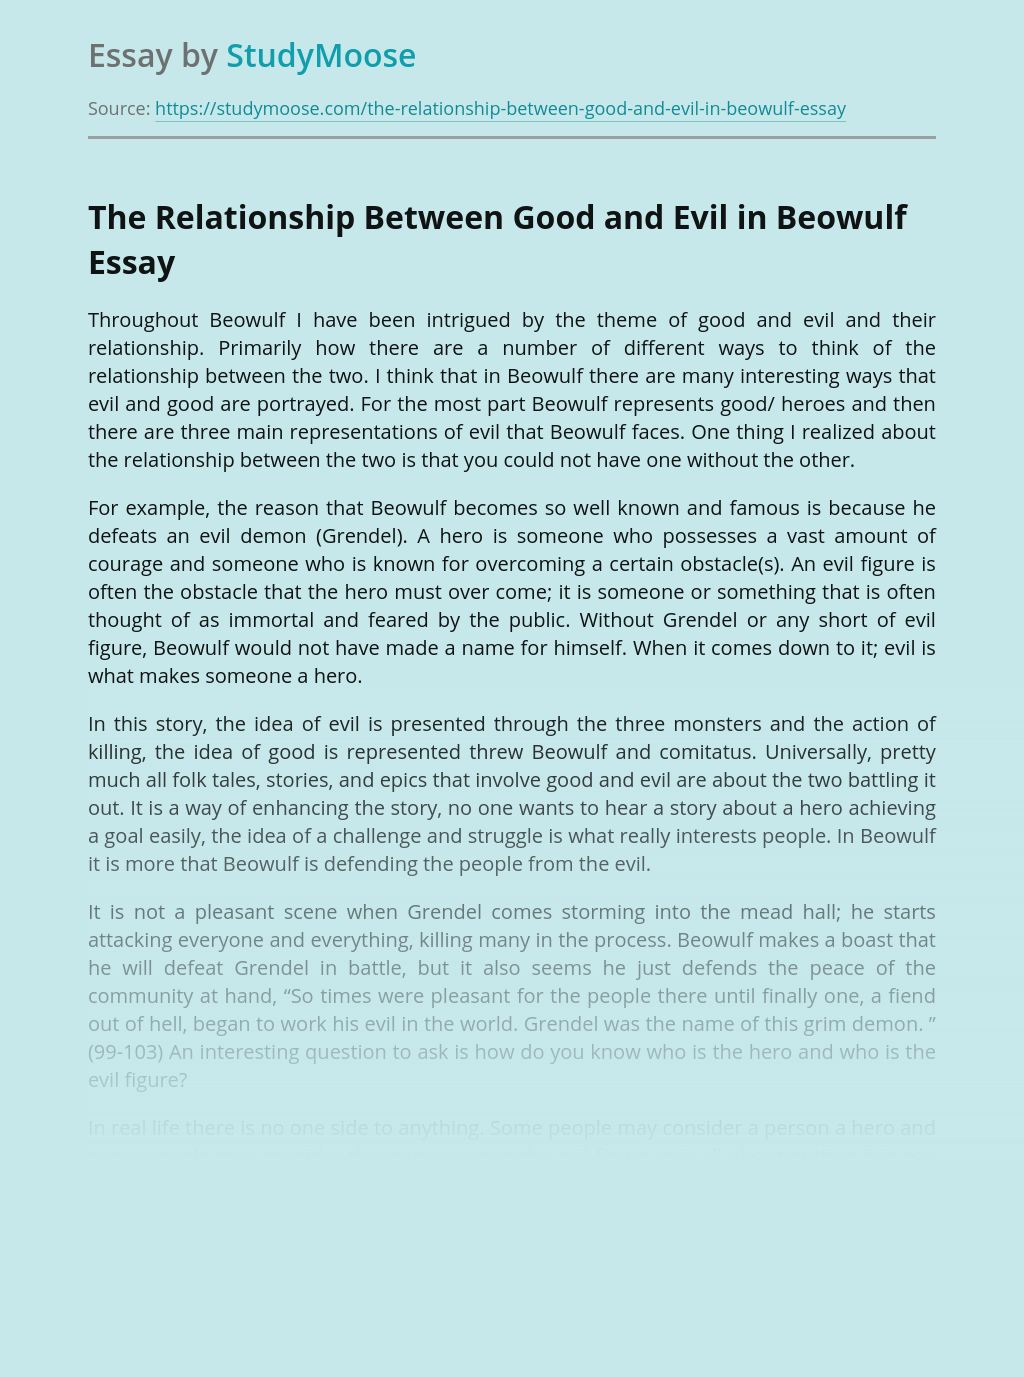 The Relationship Between Good and Evil in Beowulf